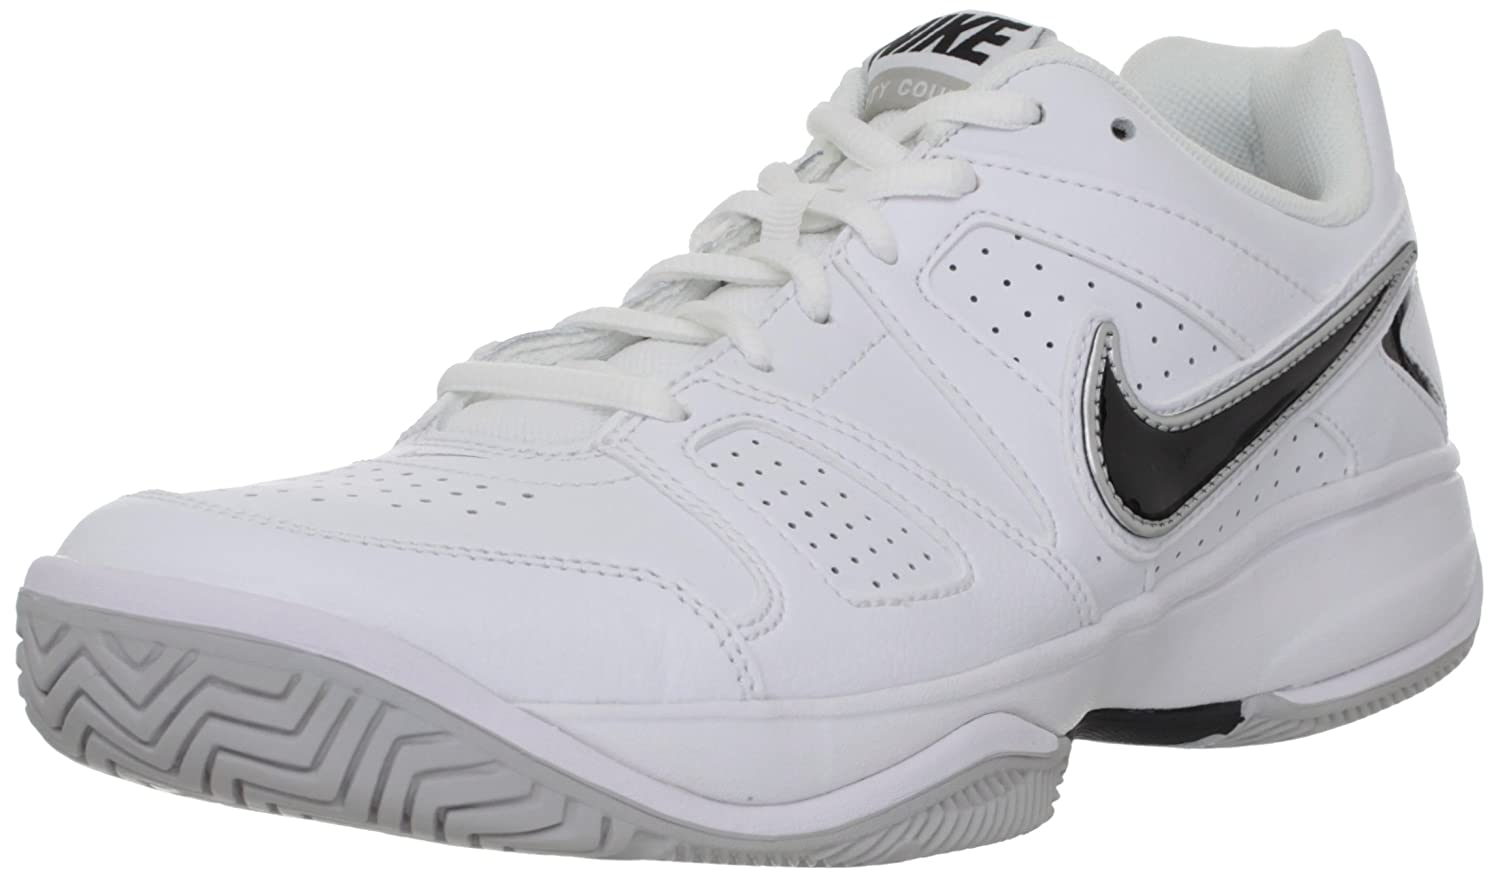 timeless design aae08 2c7a8 Amazon.com   Nike City Court VII Men s Tennis ShoesWhite Neutral  Grey Metallic Silver Black 8 D - Medium   Tennis   Racquet Sports